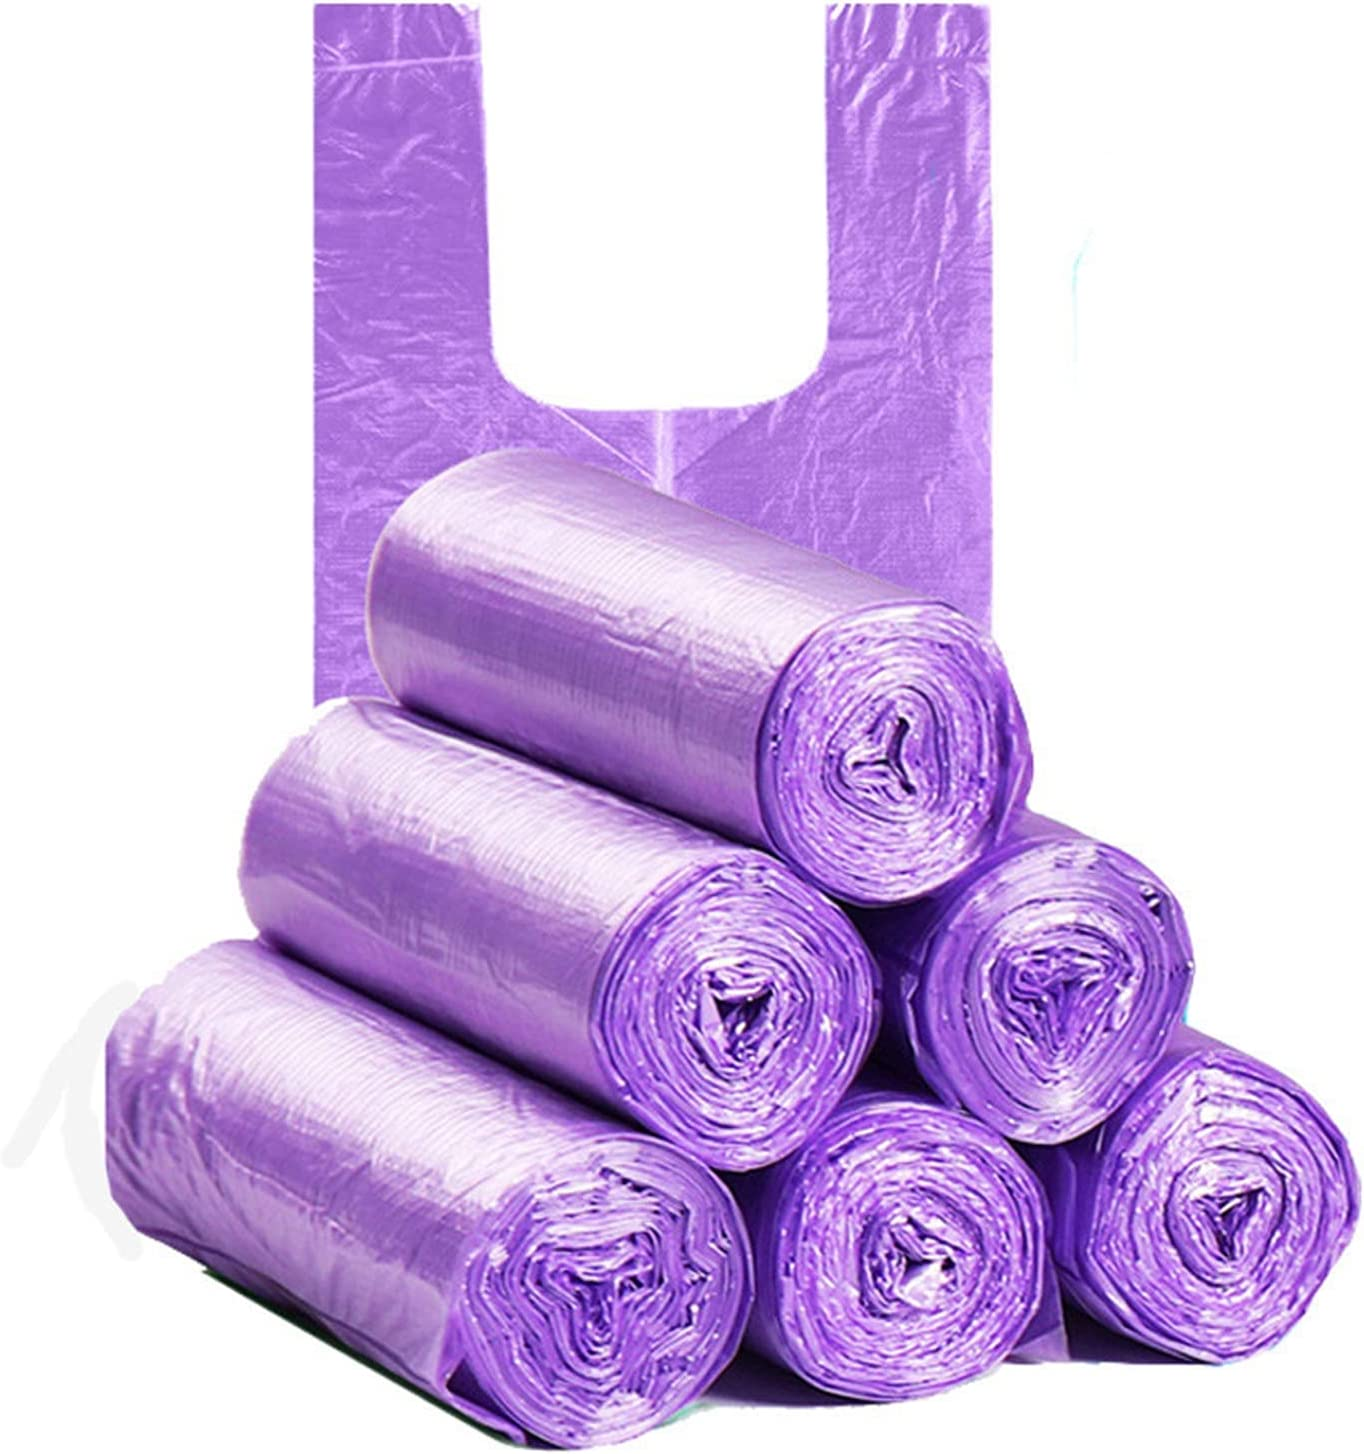 ZHENZEN 100PCS 5 Rolls Trash Bags Black Green Purple Thicke Super Special SALE Online limited product held Blue